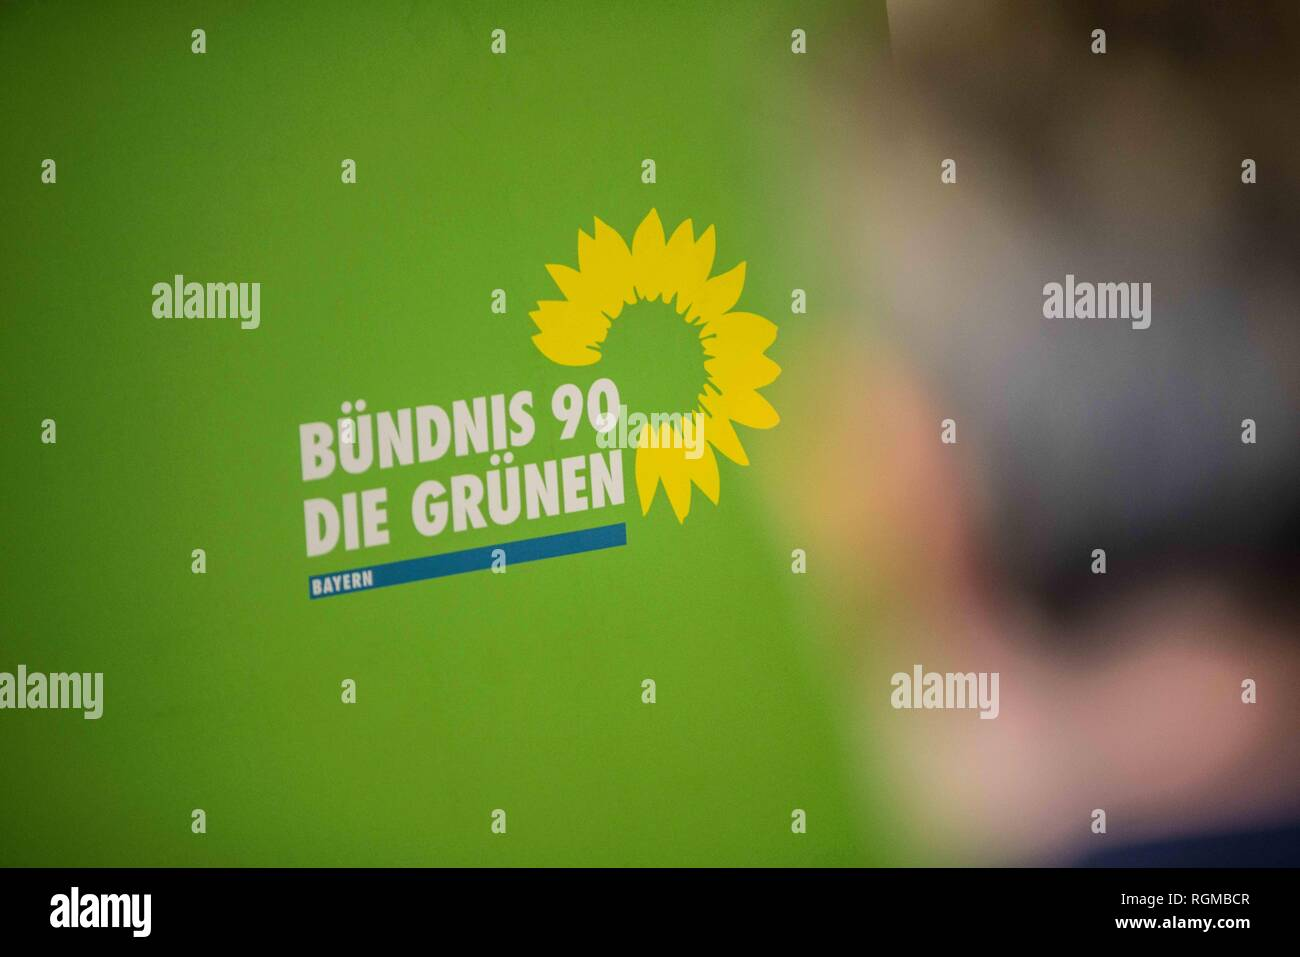 Munich, Bavaria, Germany. 30th Jan, 2019. The logo of the Green Party of Germany. The Bavarian Green Party presented Henrike Hahn, their European ParliamentSpitzenkandidat for the upcoming European elections (Europawahl). Hahn is a trained technologist and has lived previously in Detroit and Paris. Her strategies are based on ecological and social criteria and fighting against populism and right extremism. The Greens see the European Union as the greatest peace project of our time, thus they have positioned themselves against authoritarianism, populism, xenophobia, and anti-semitism. (C - Stock Image